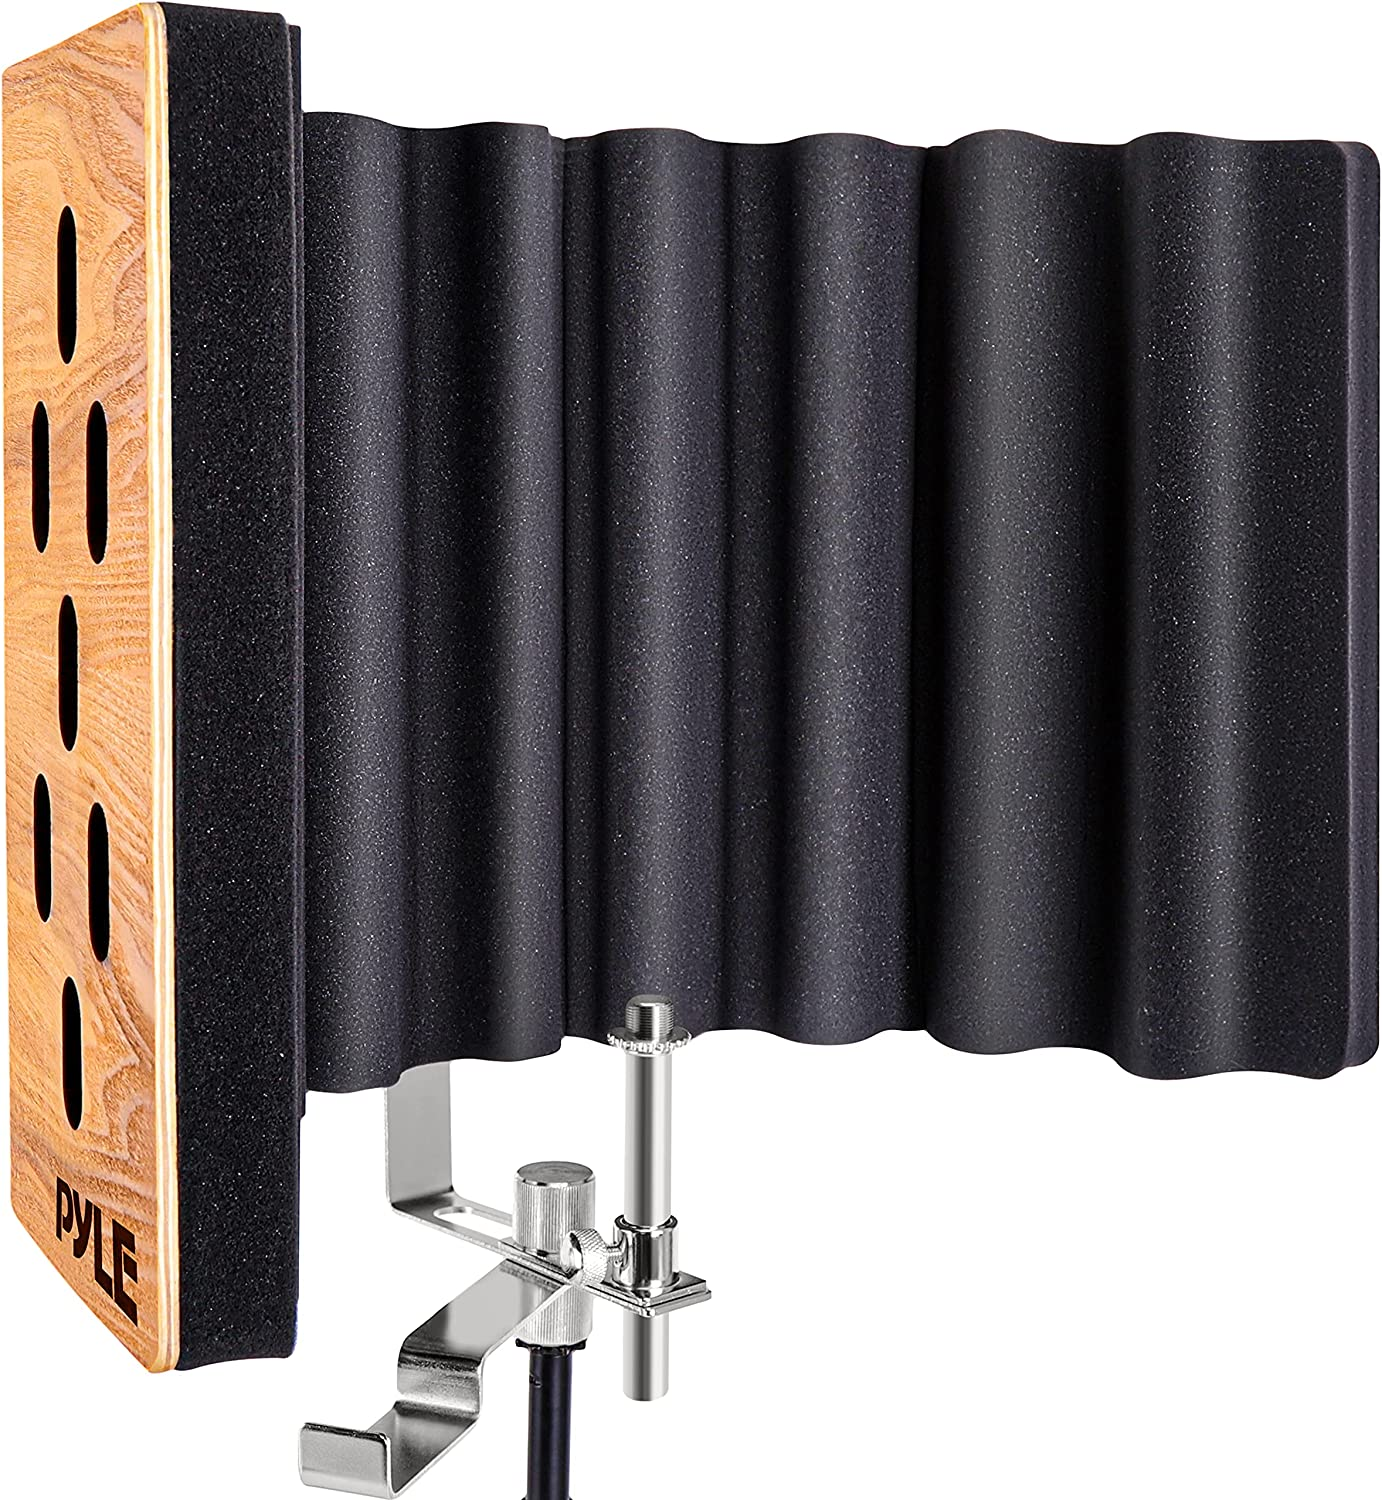 Pyle Wood Microphone Isolation Shield - Sound Isolation Recording Booth, Studio Microphone Vocal Booth Dampening Filter Foam Acoustic Panel w/ 2